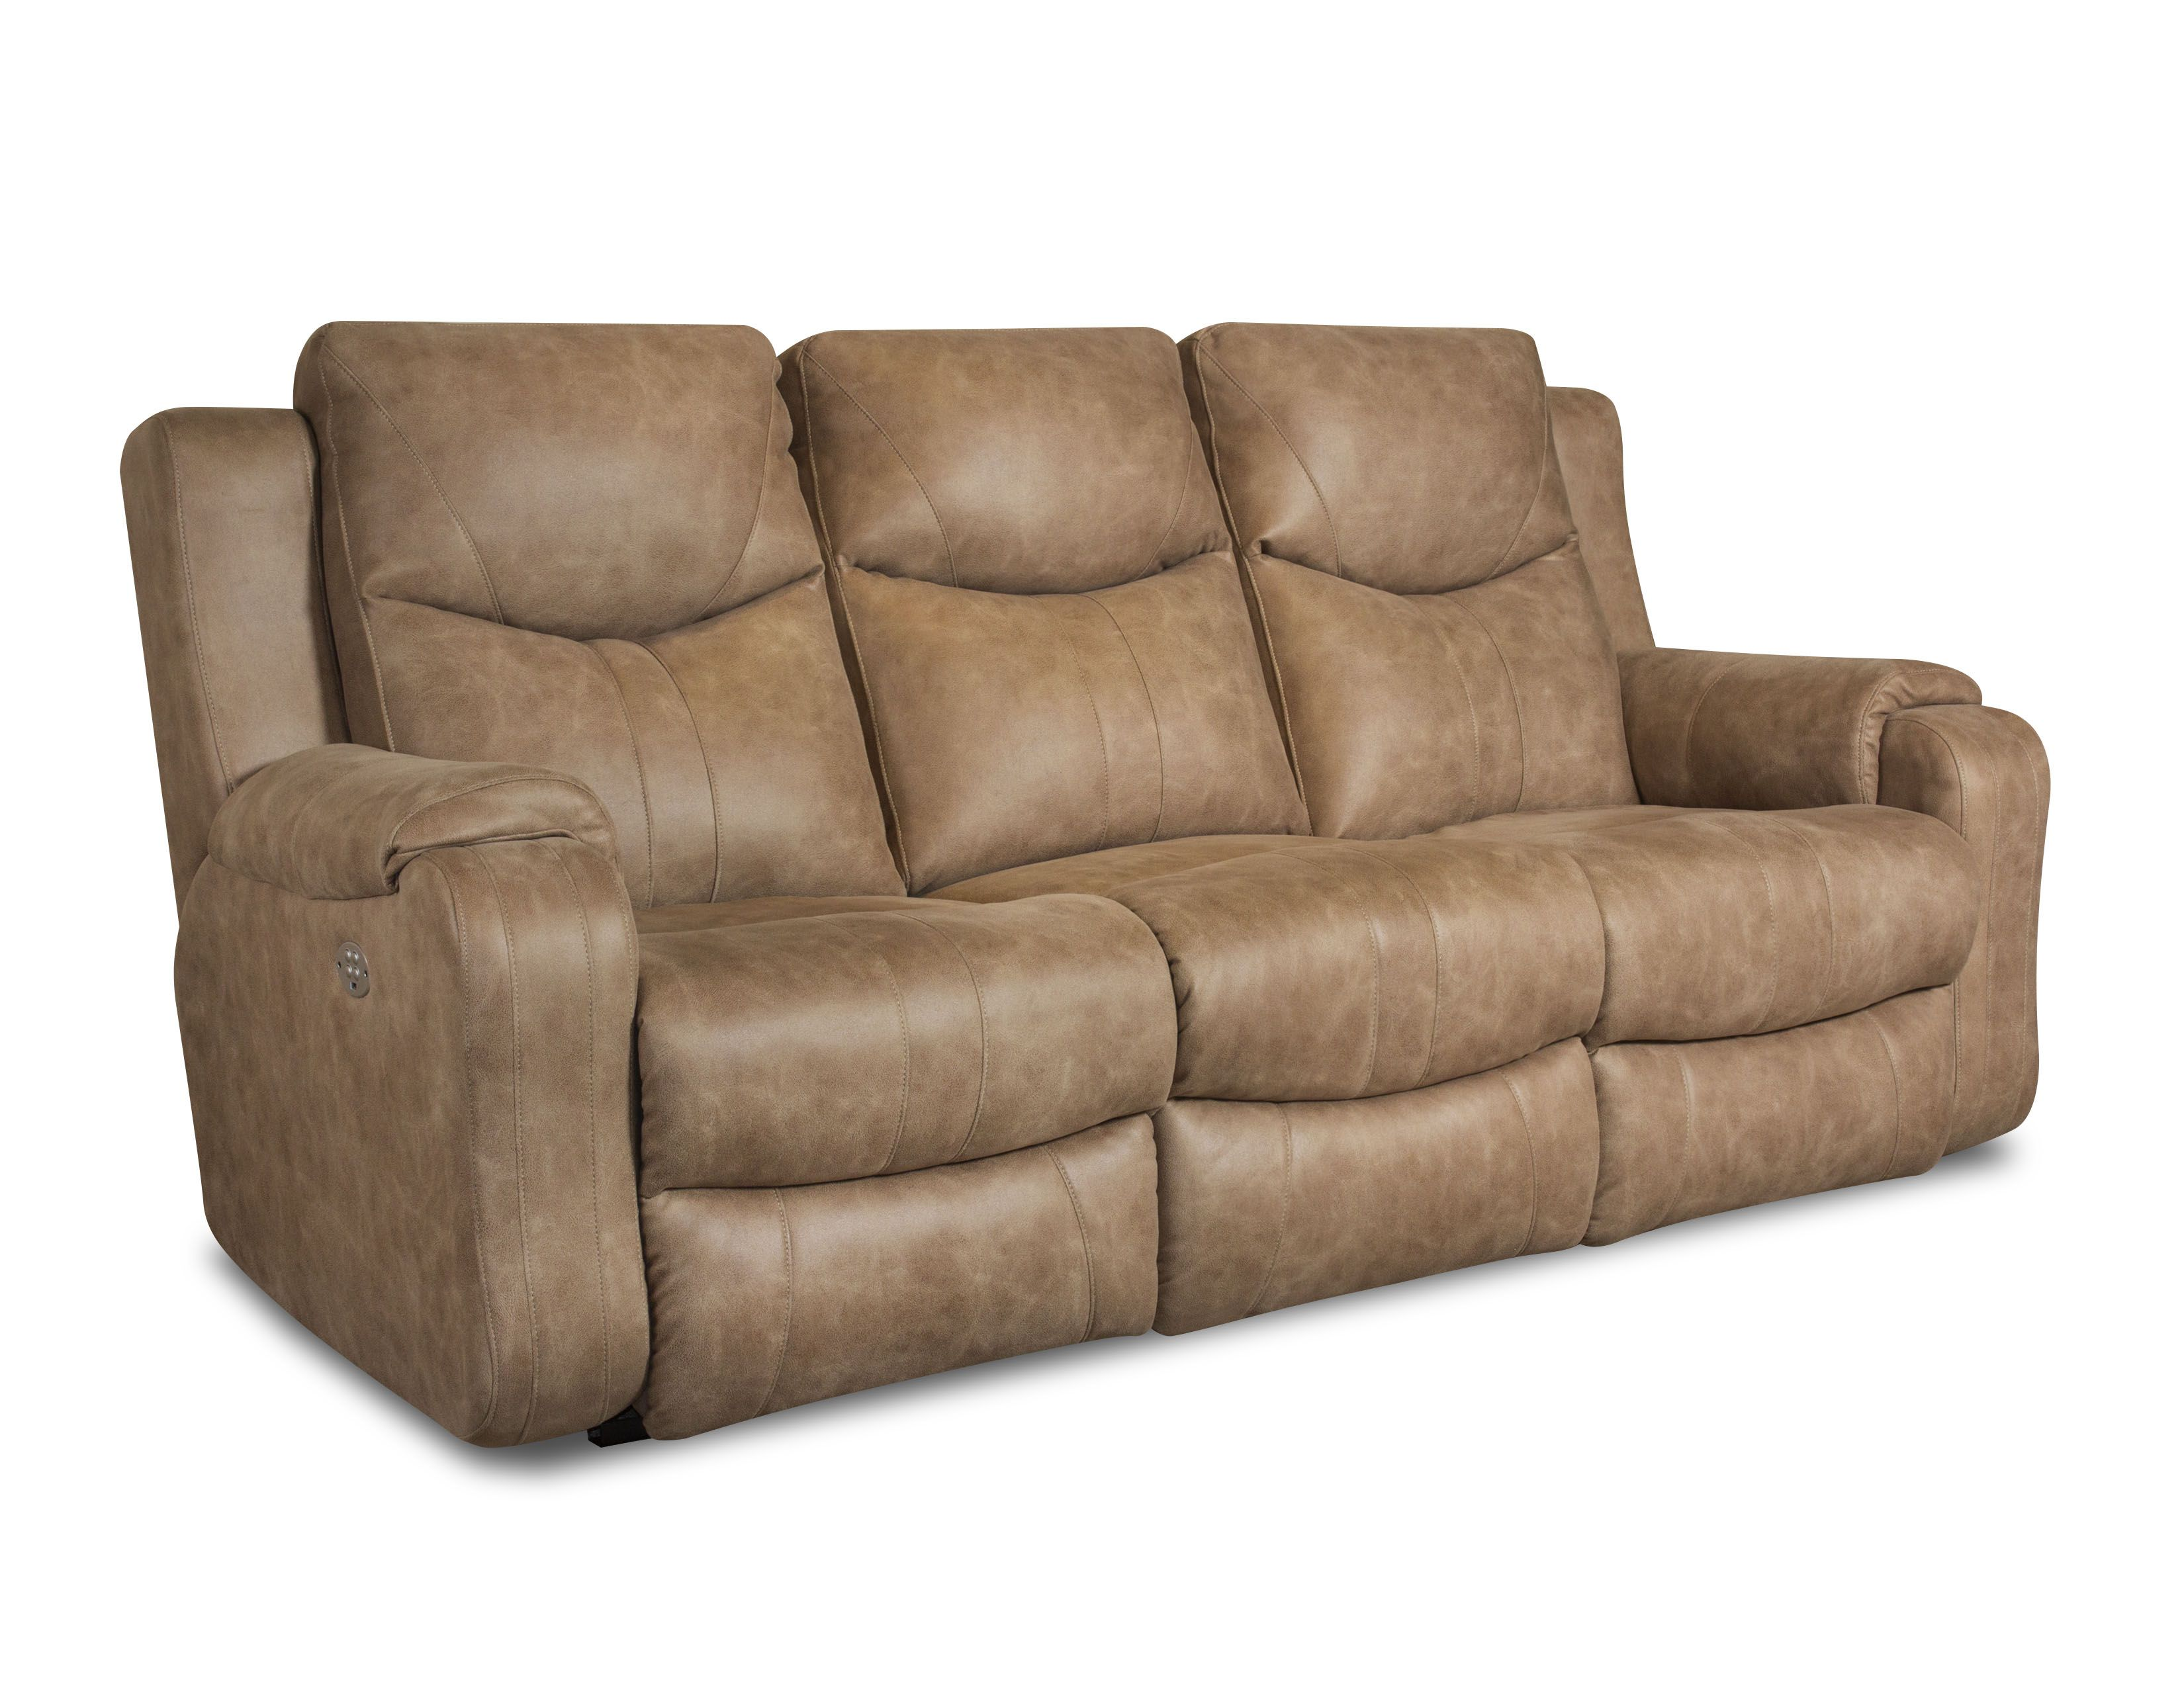 Marvel Reclining Sofa 881 30 Sofas From Southern Motion At